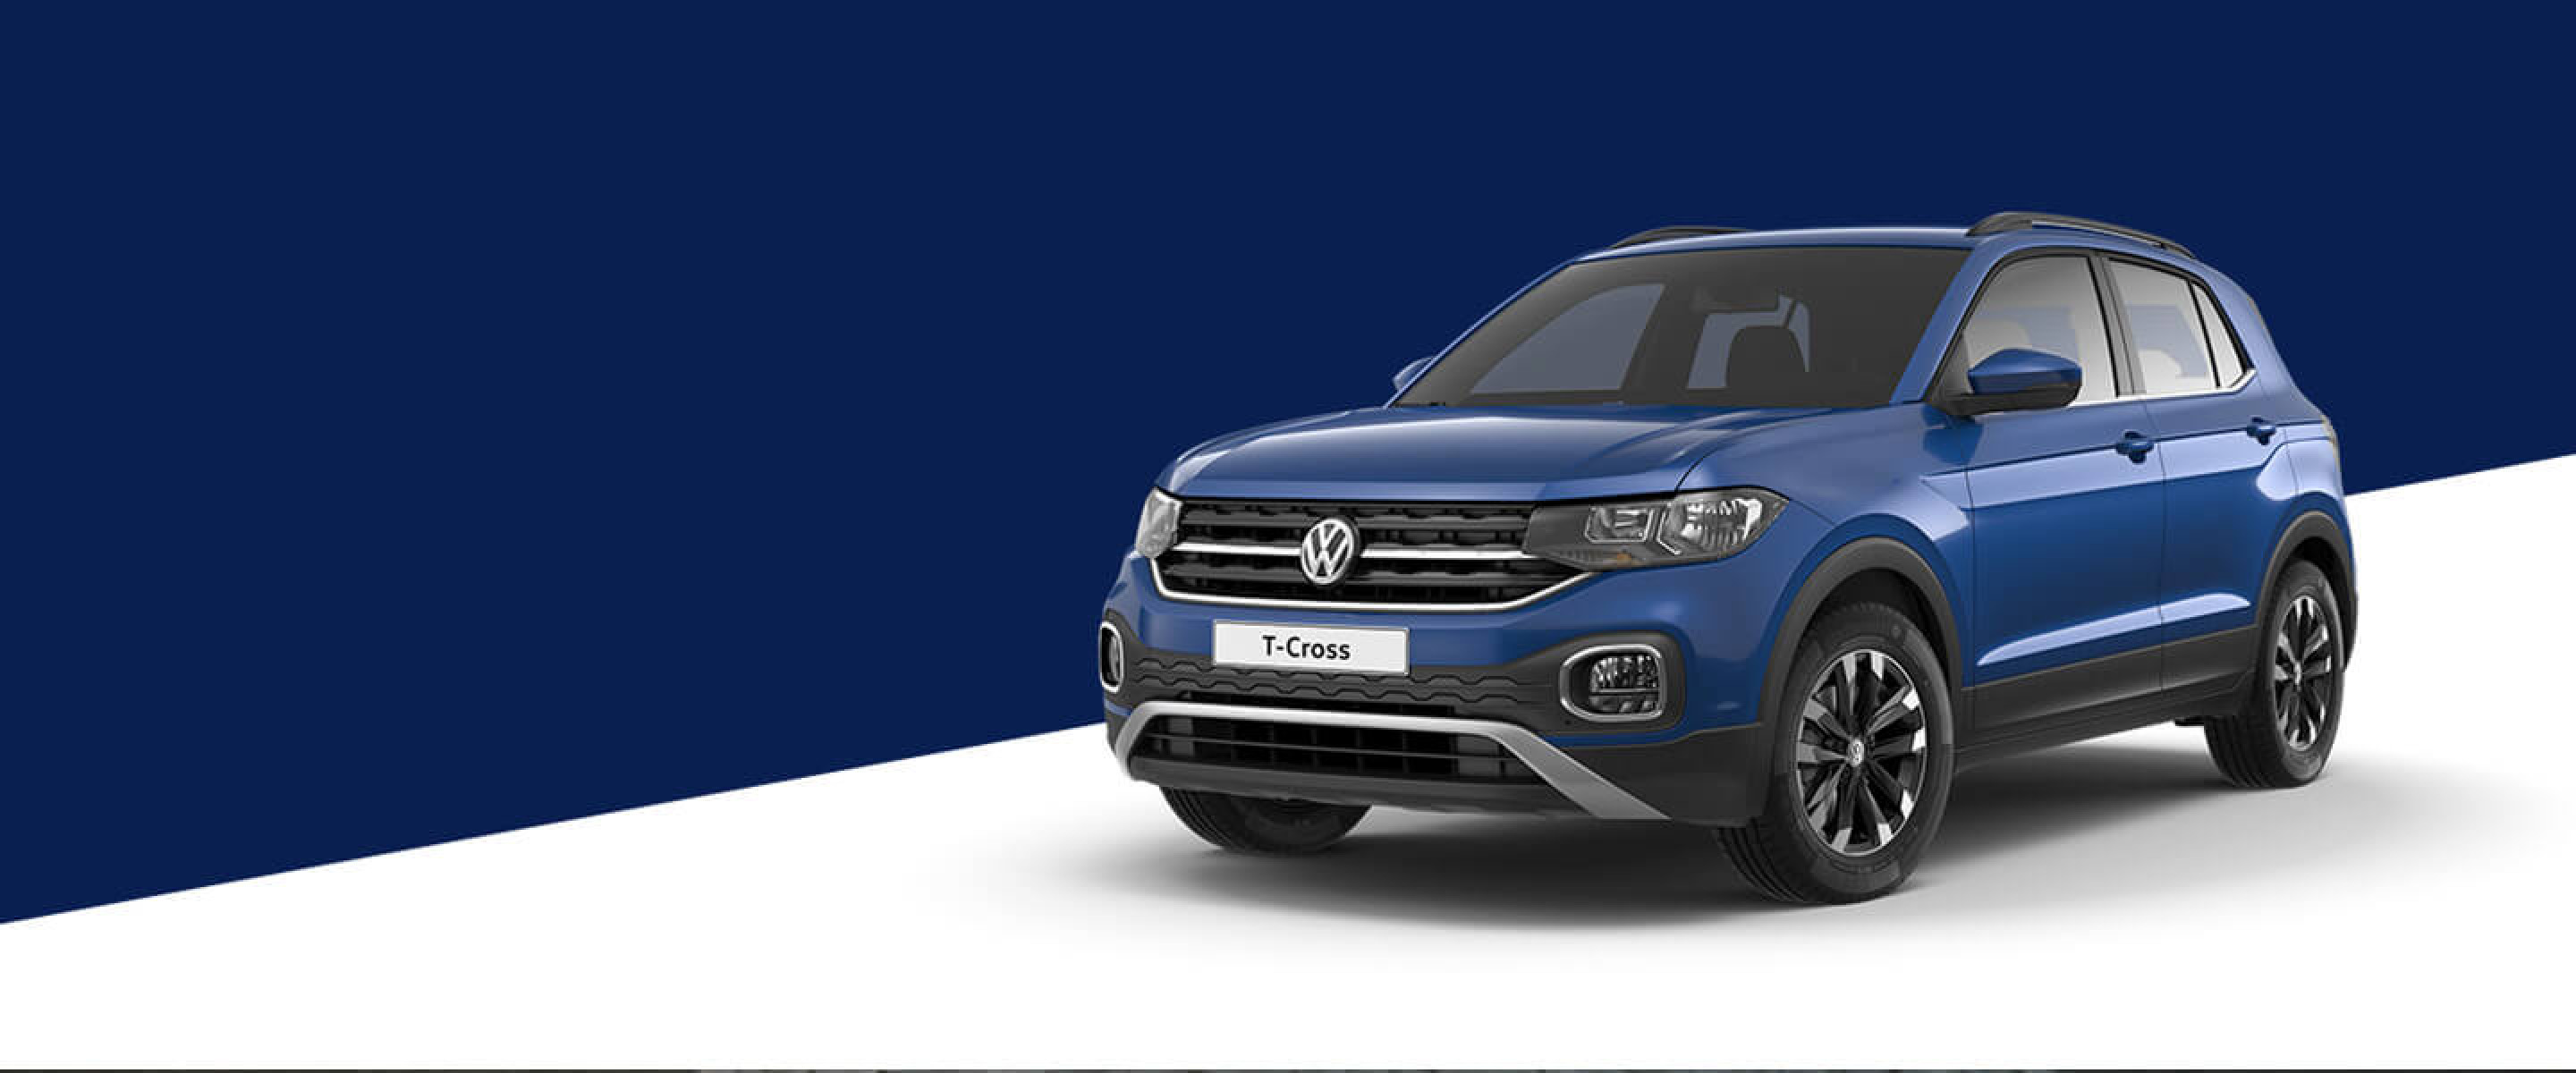 2102-volkswagen-t-cross-private-lease-header.jpg